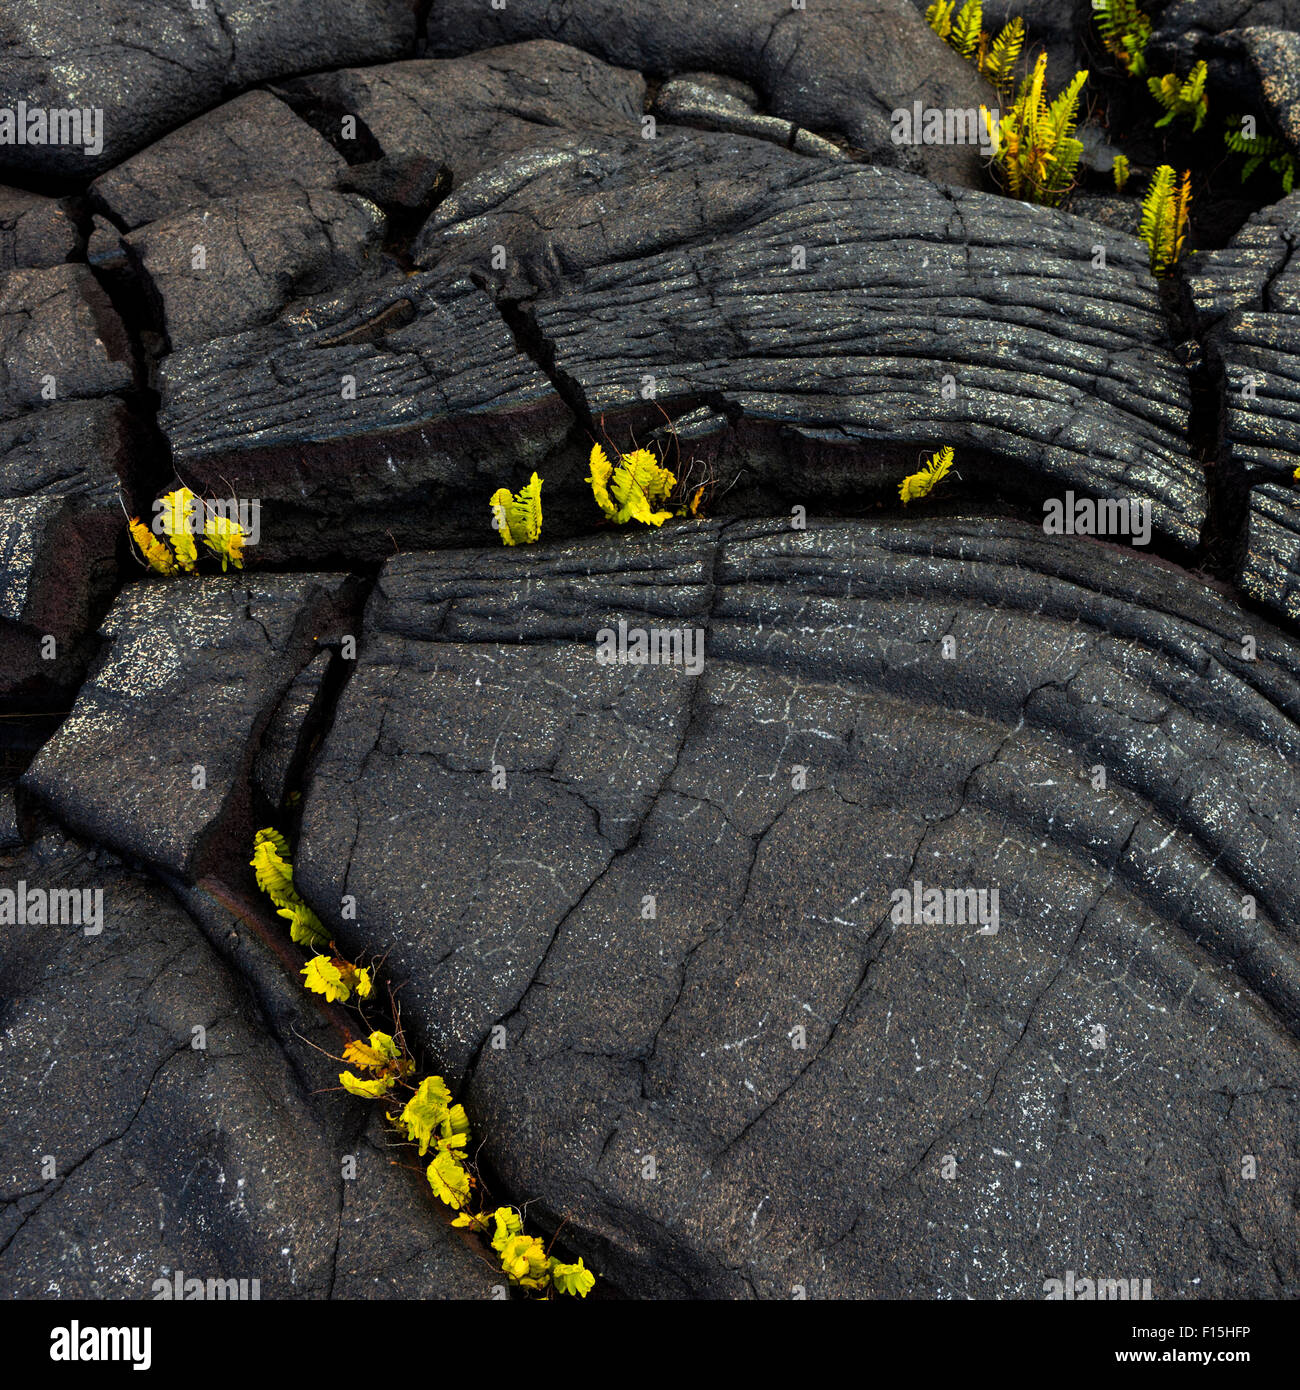 Weathered pahoehoe rope lava with ferns at Alanui Kahiko in Hawaii Volcanoes National Park - Stock Image